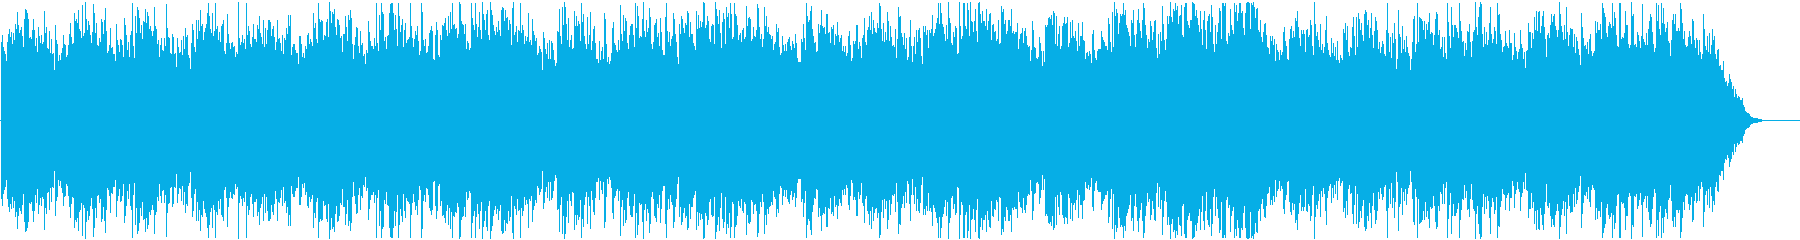 For natural images! Ambient BGM's reproduced waveform